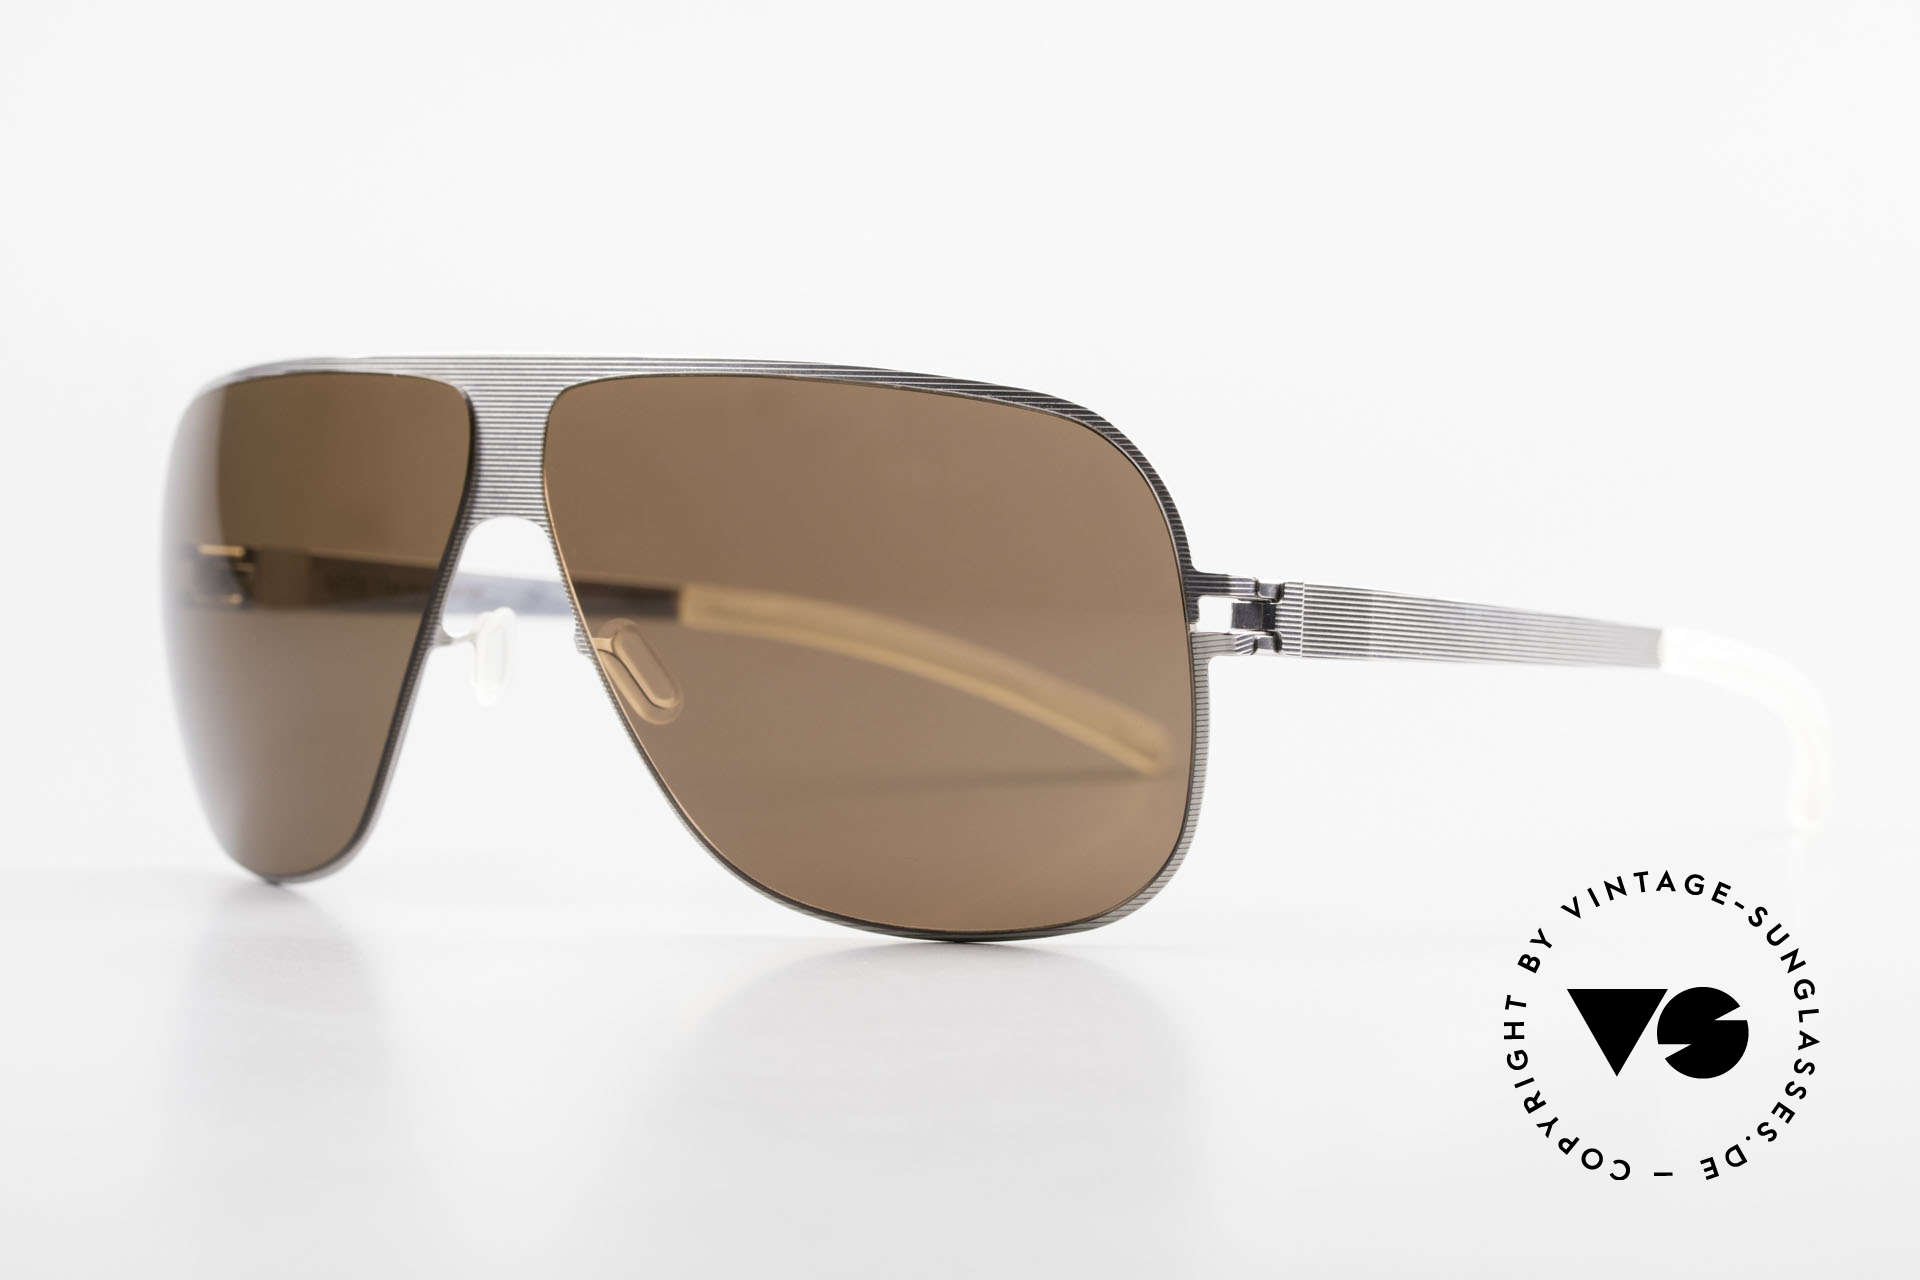 Mykita Hector Aviator Men's Sunglasses 2009's, Collection No.1 Hector Silverline, brown solid, in 65/8, Made for Men